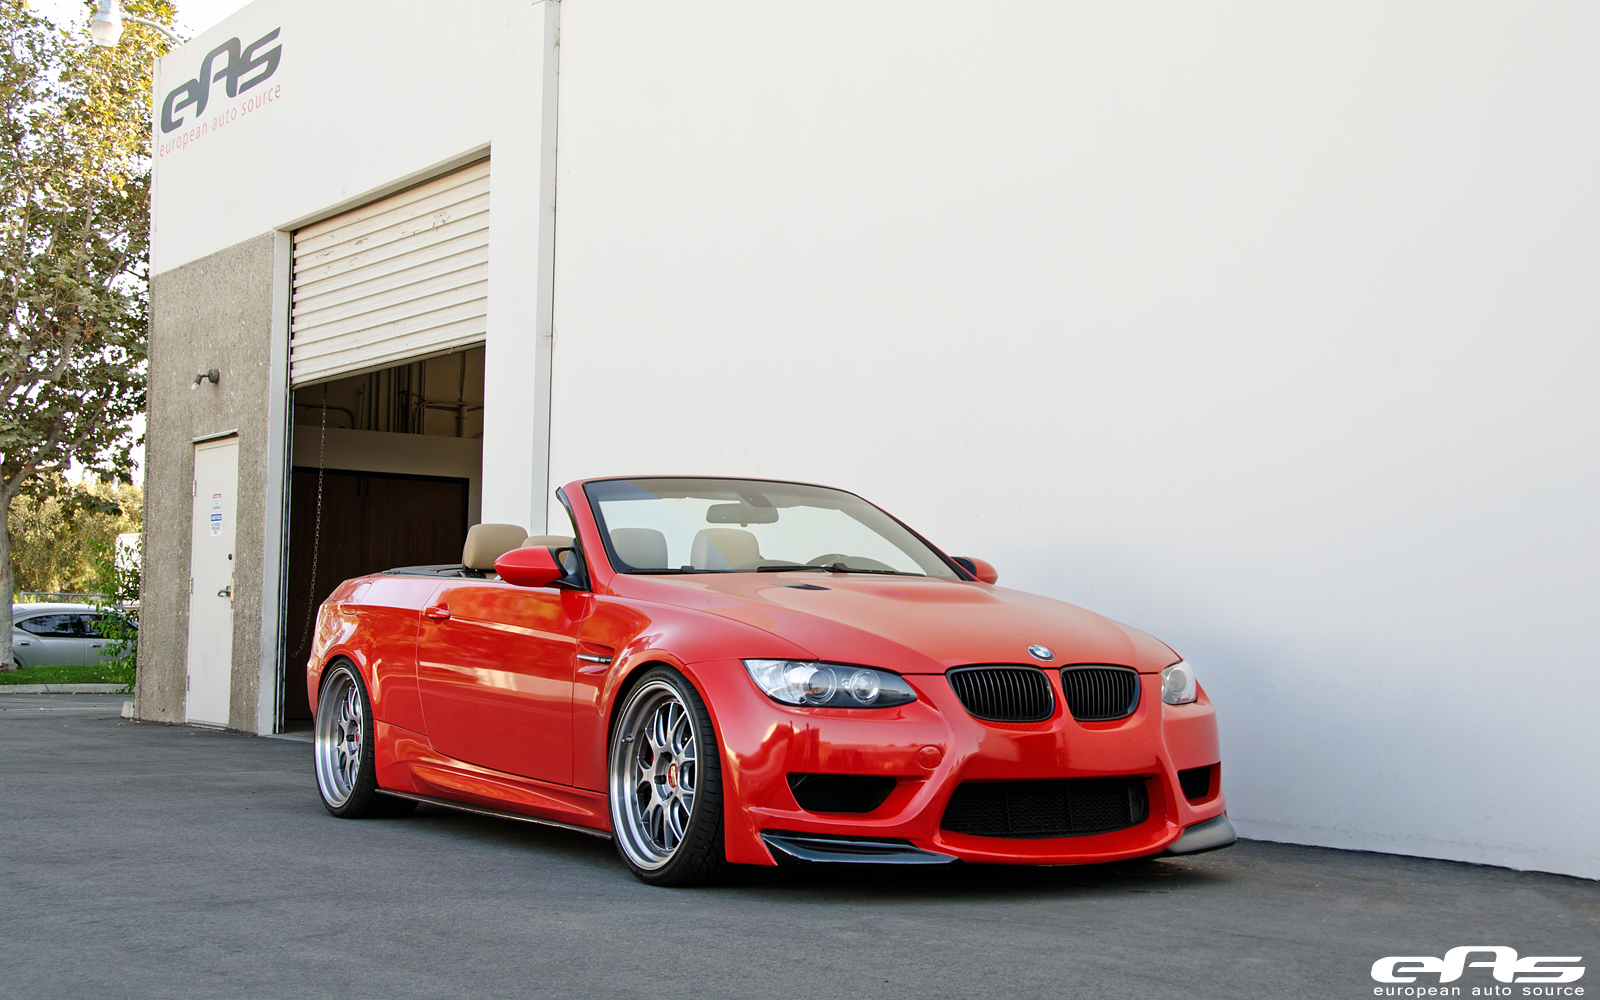 aggressive bmw e93 m3 is perfect for the end of the summer